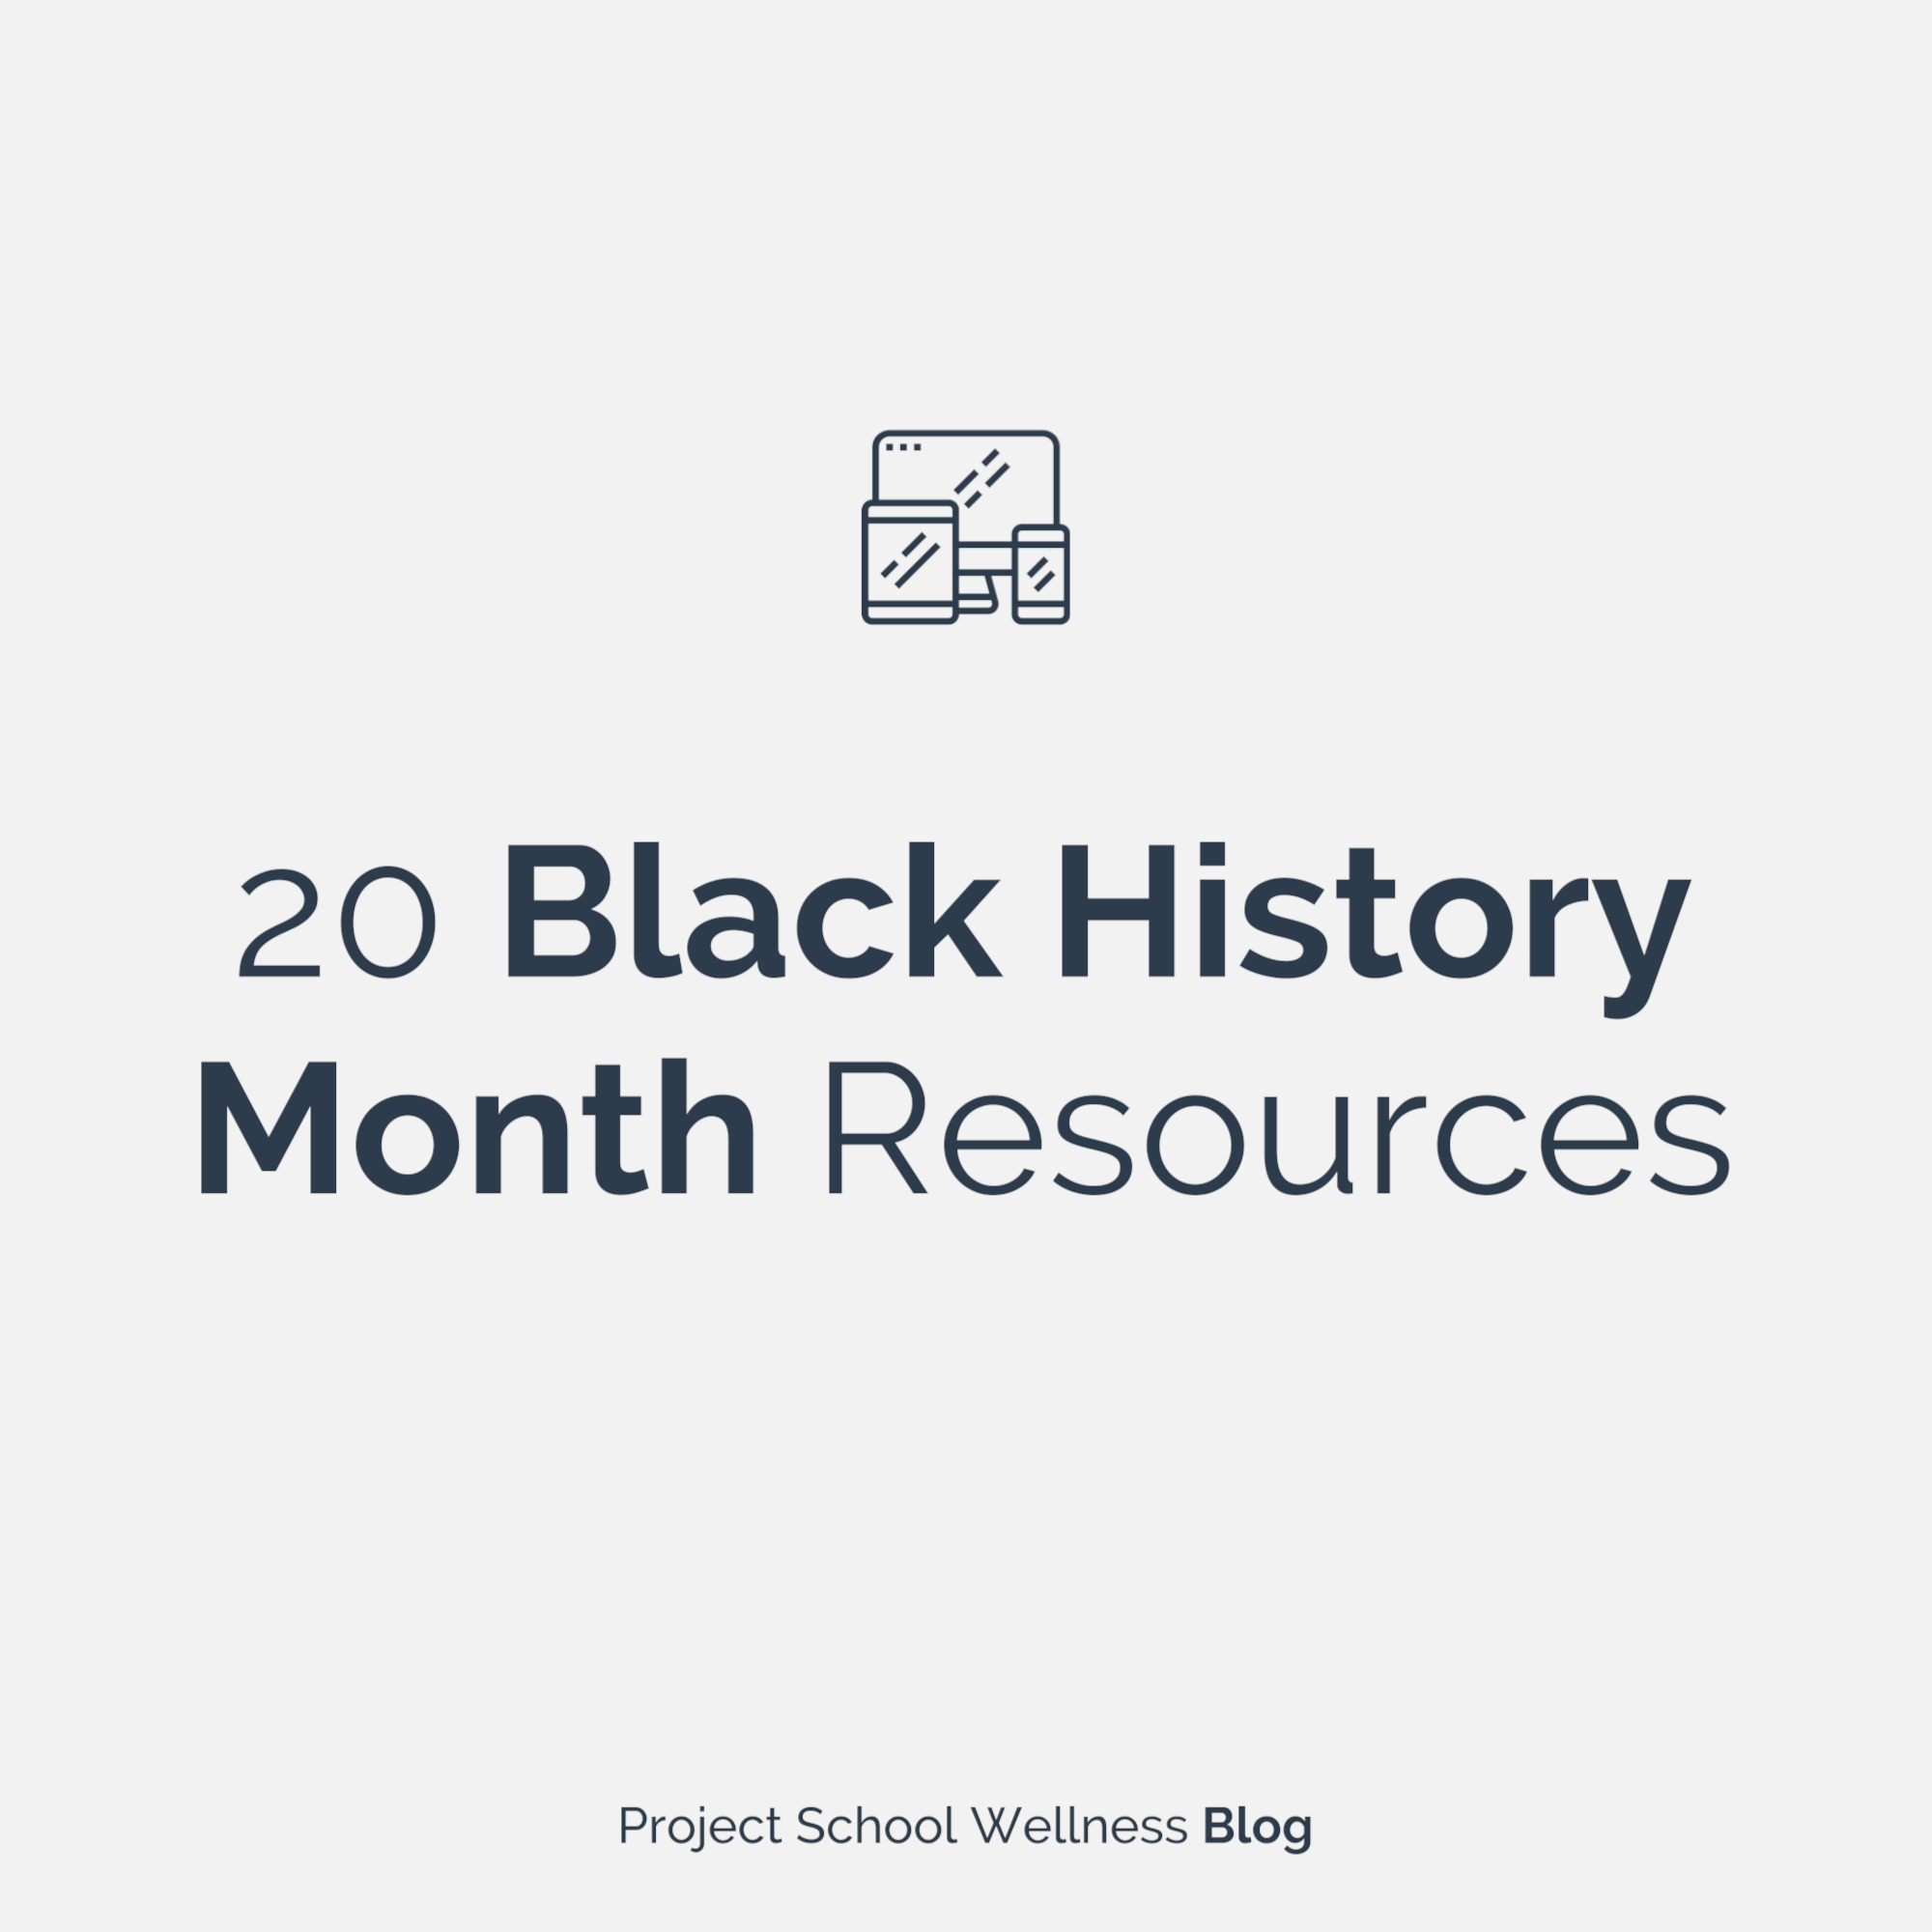 PSW Blog - 20 Black History Month Resources